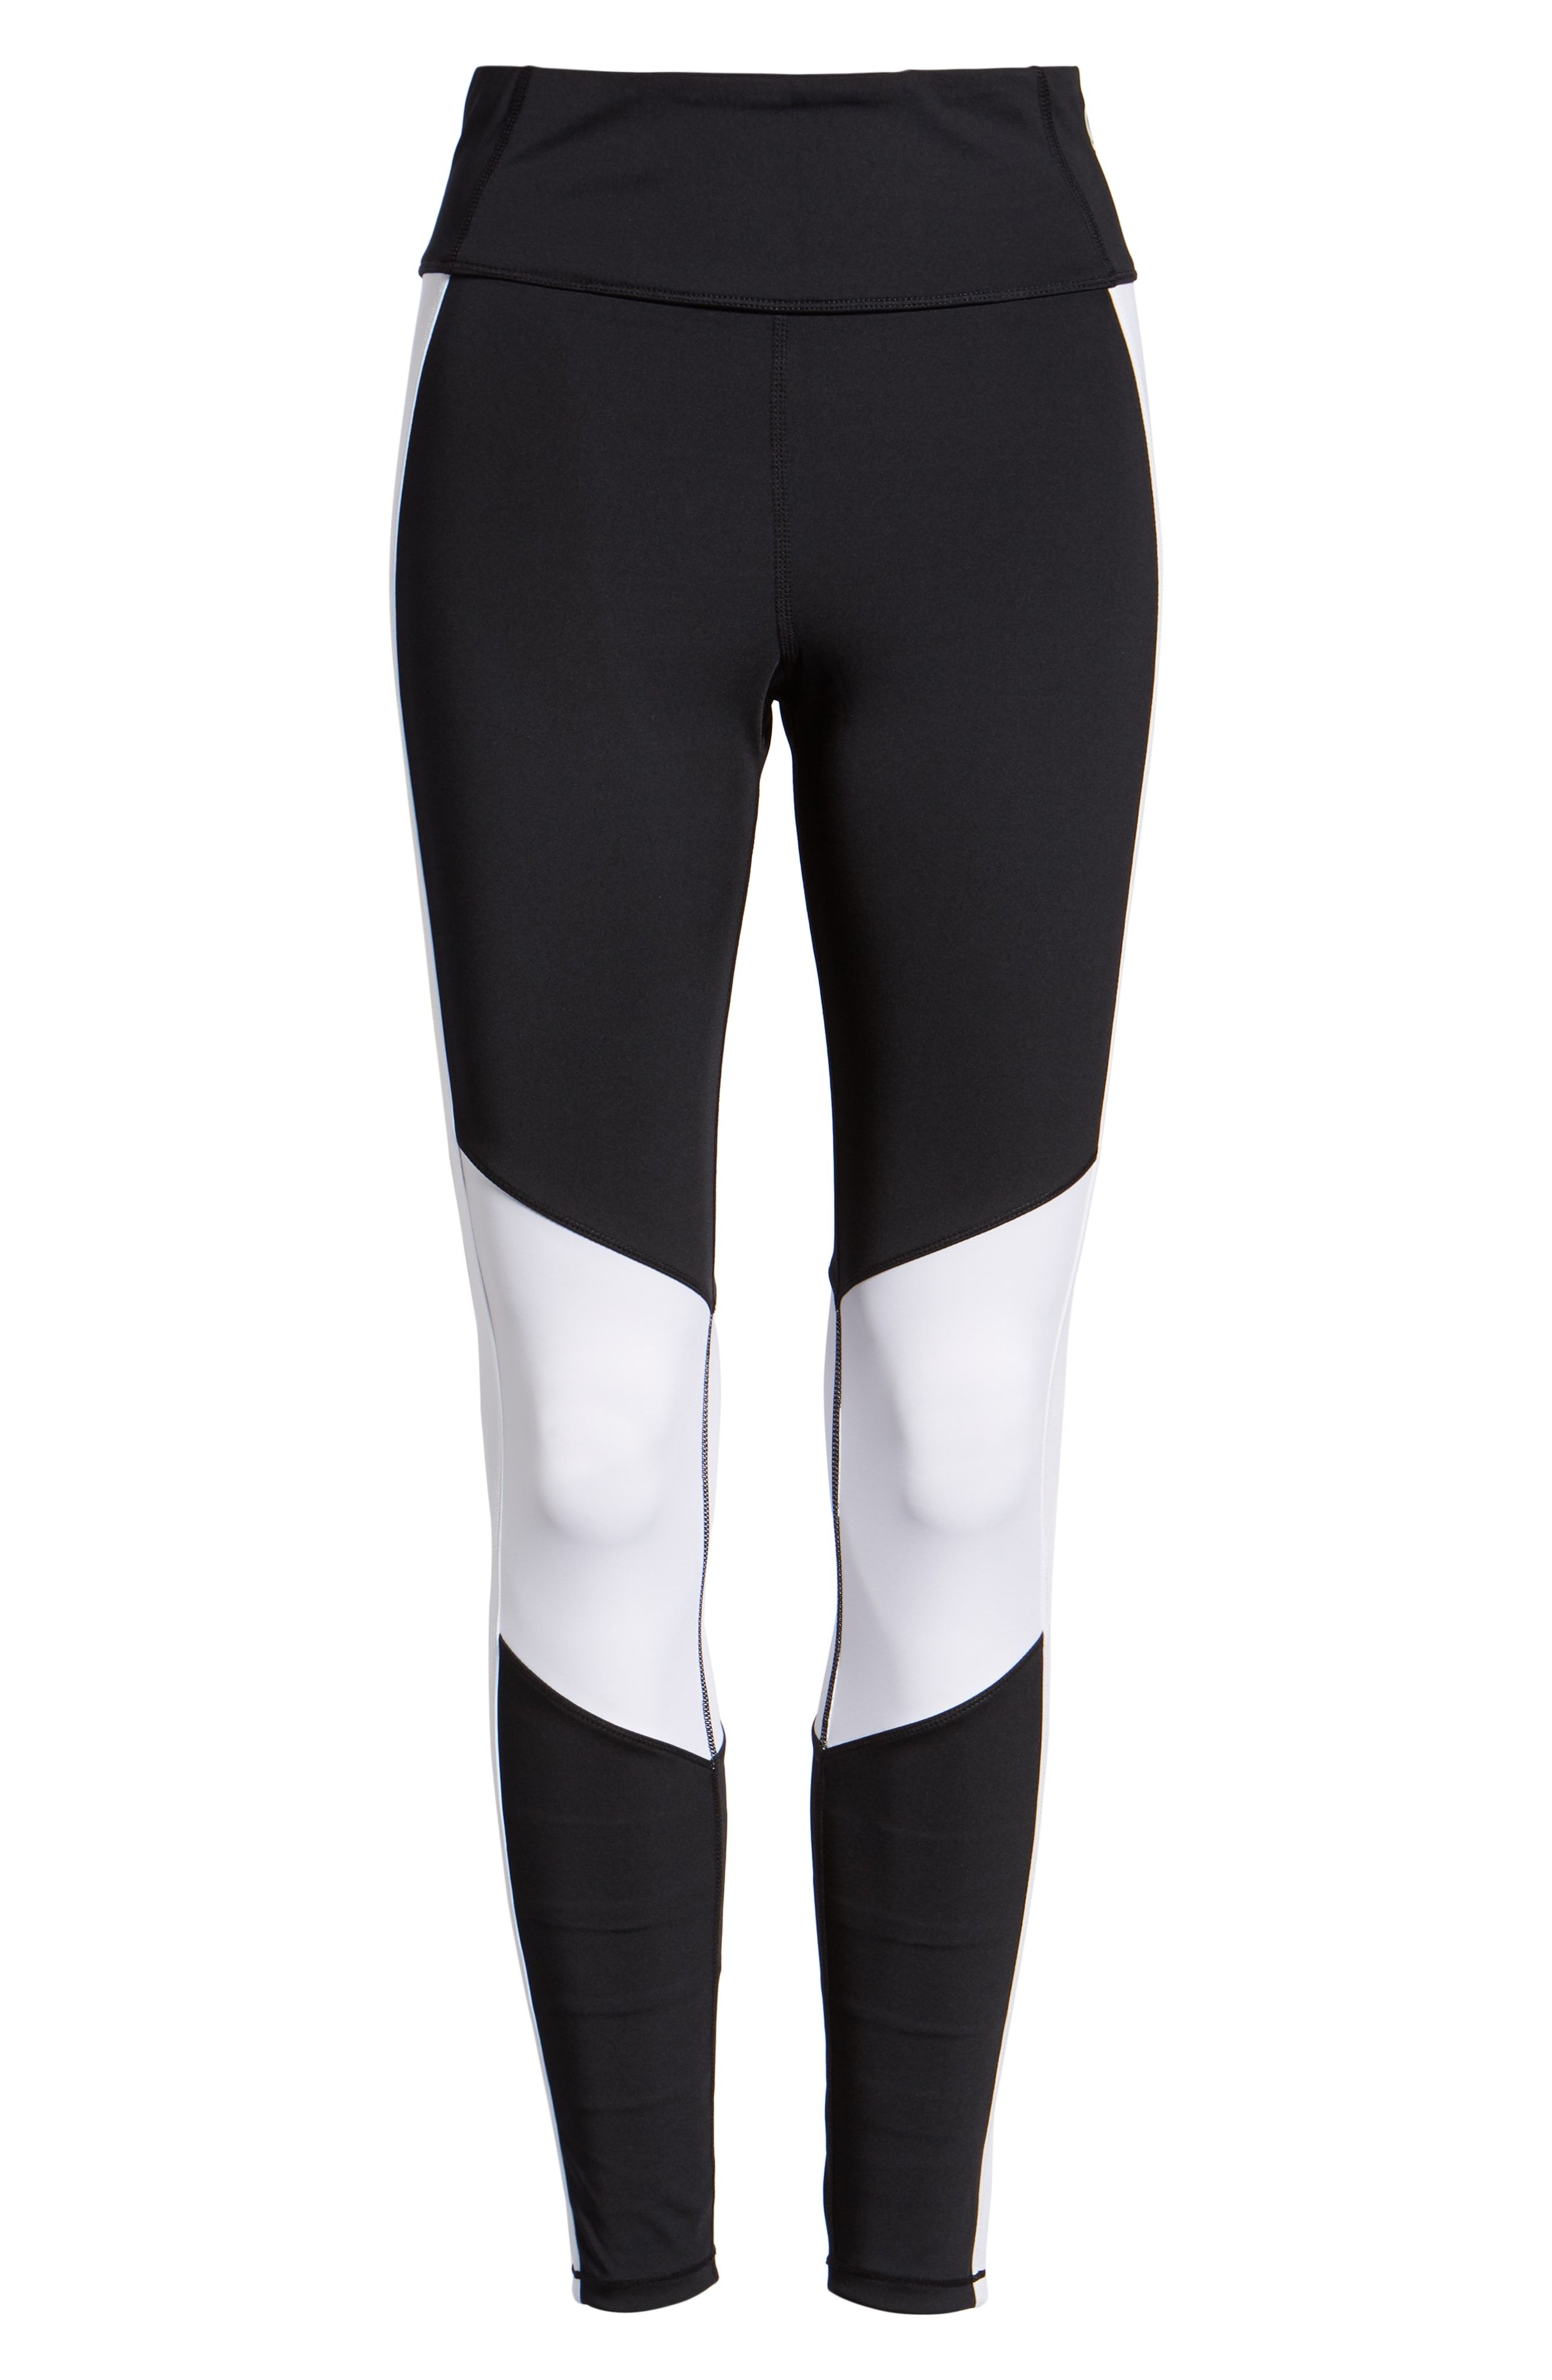 4d3cbe69d2 The 10 Best Workout Leggings to Try in 2019